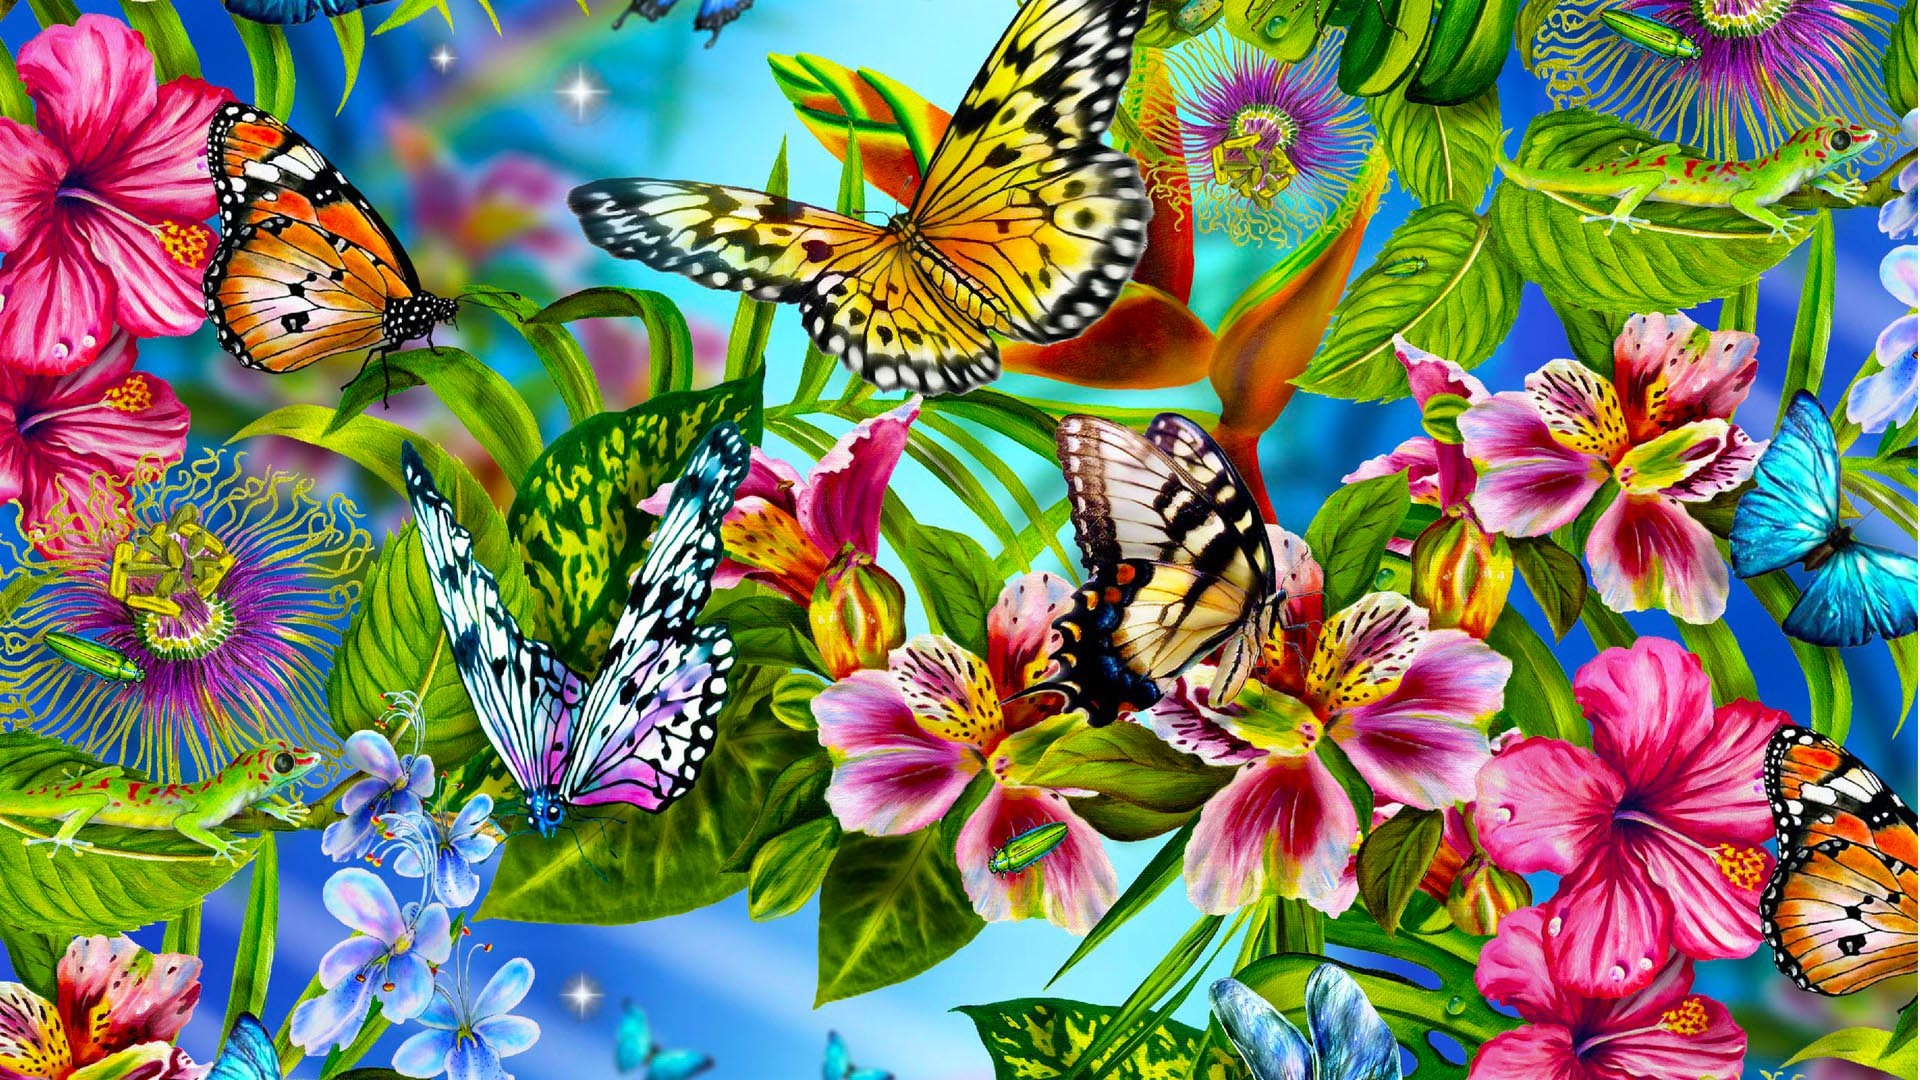 cute-girly-butterfly-wallpaper-animals-wallpapers-widescreen-cute-girly- backgrounds-for-desktop-quotes-love-babies-pick-up-lines-girl-names-hairsty…